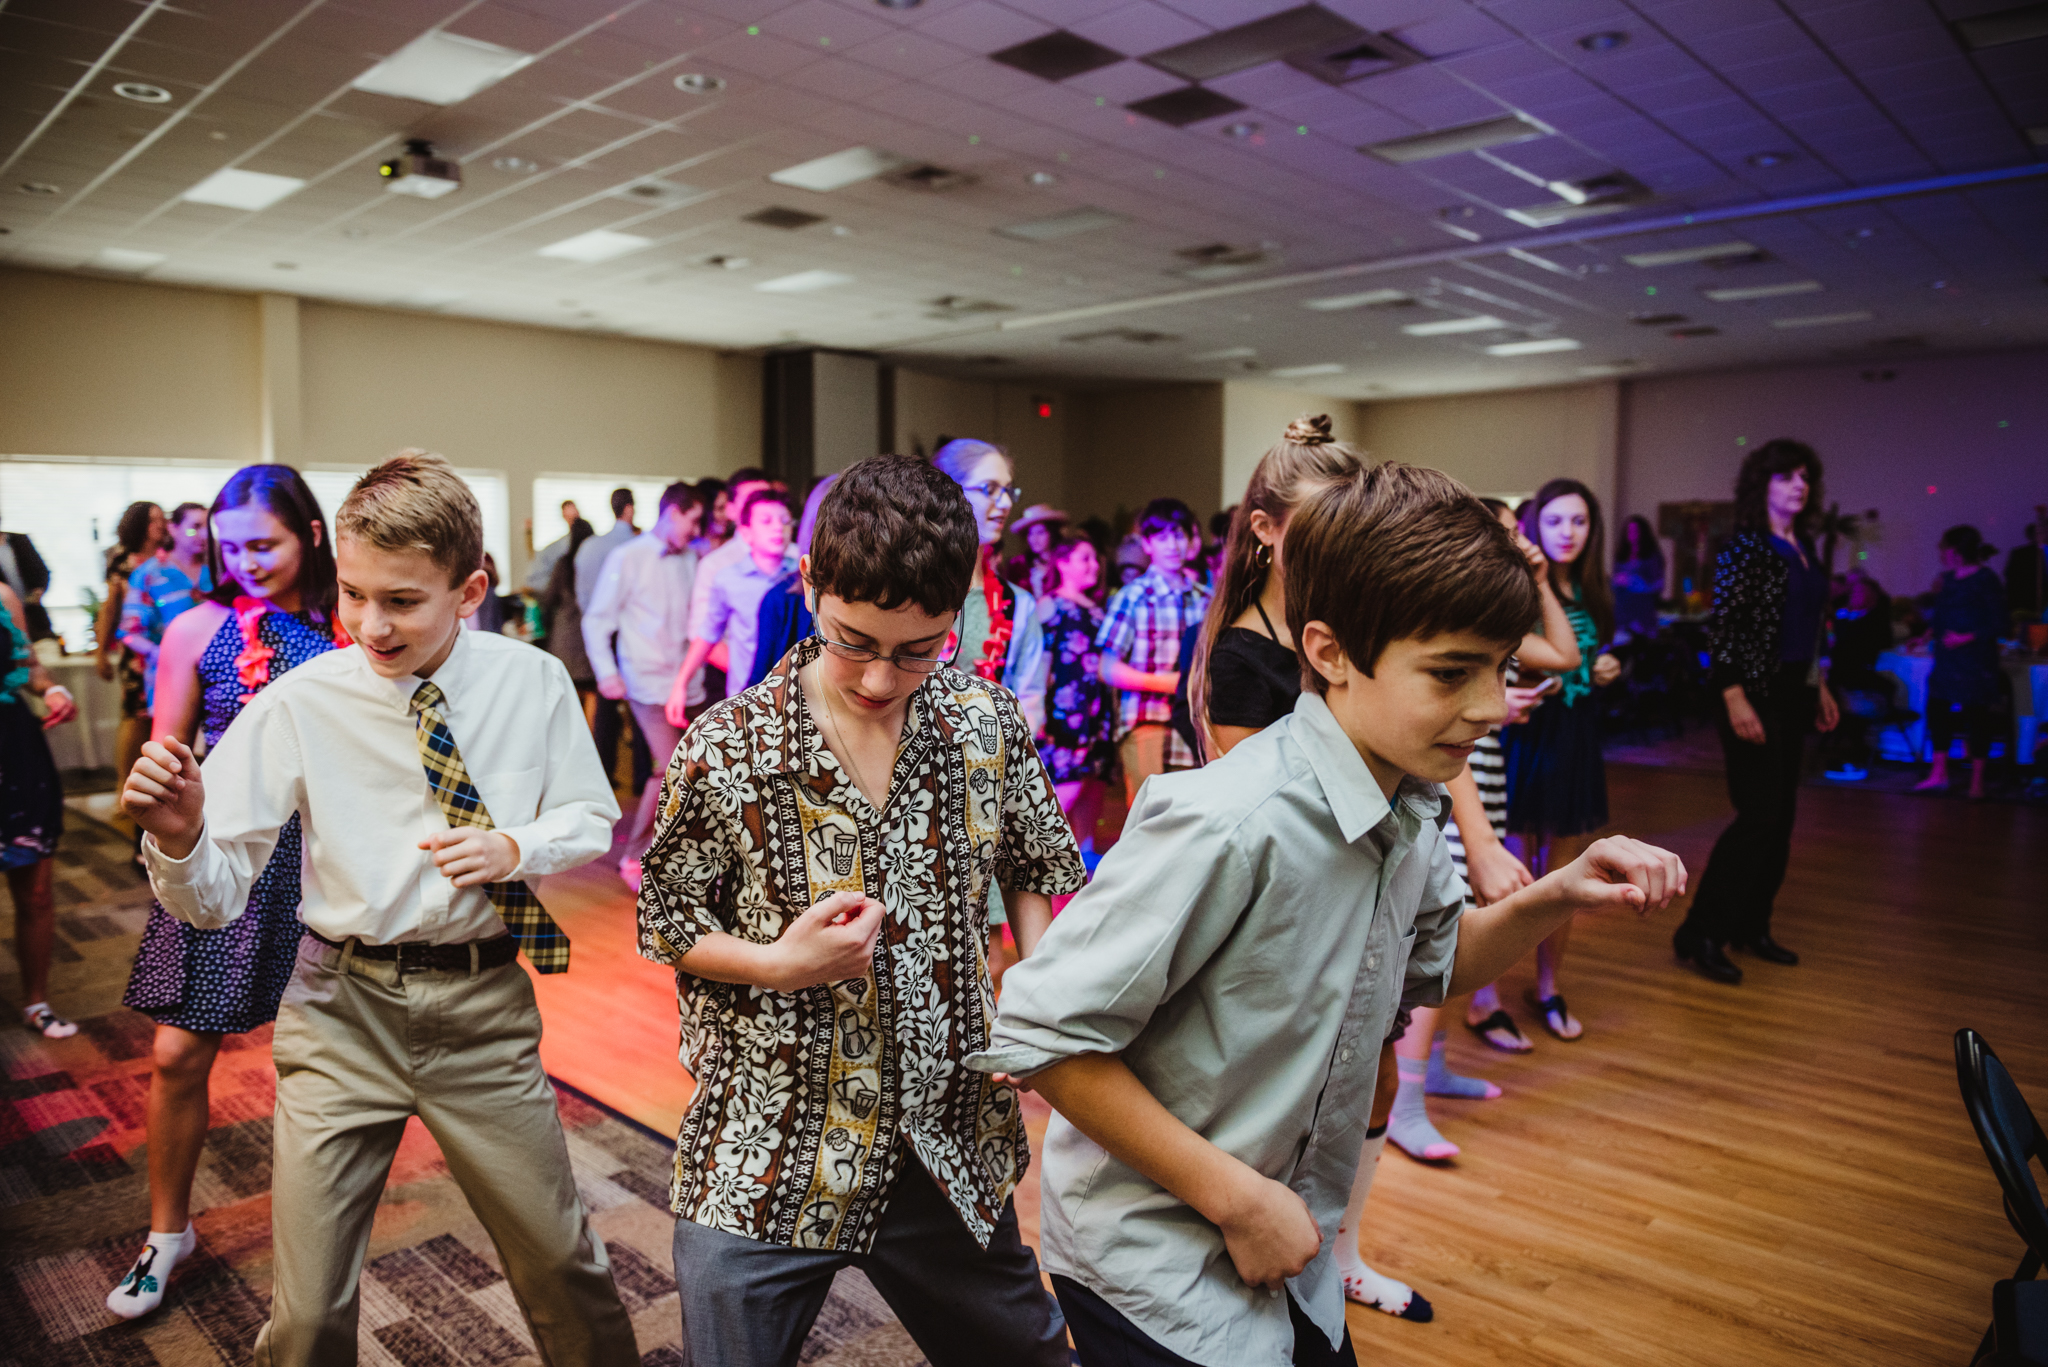 dancing-at-the-Mitzvah-celebration-in-Raleigh.jpg